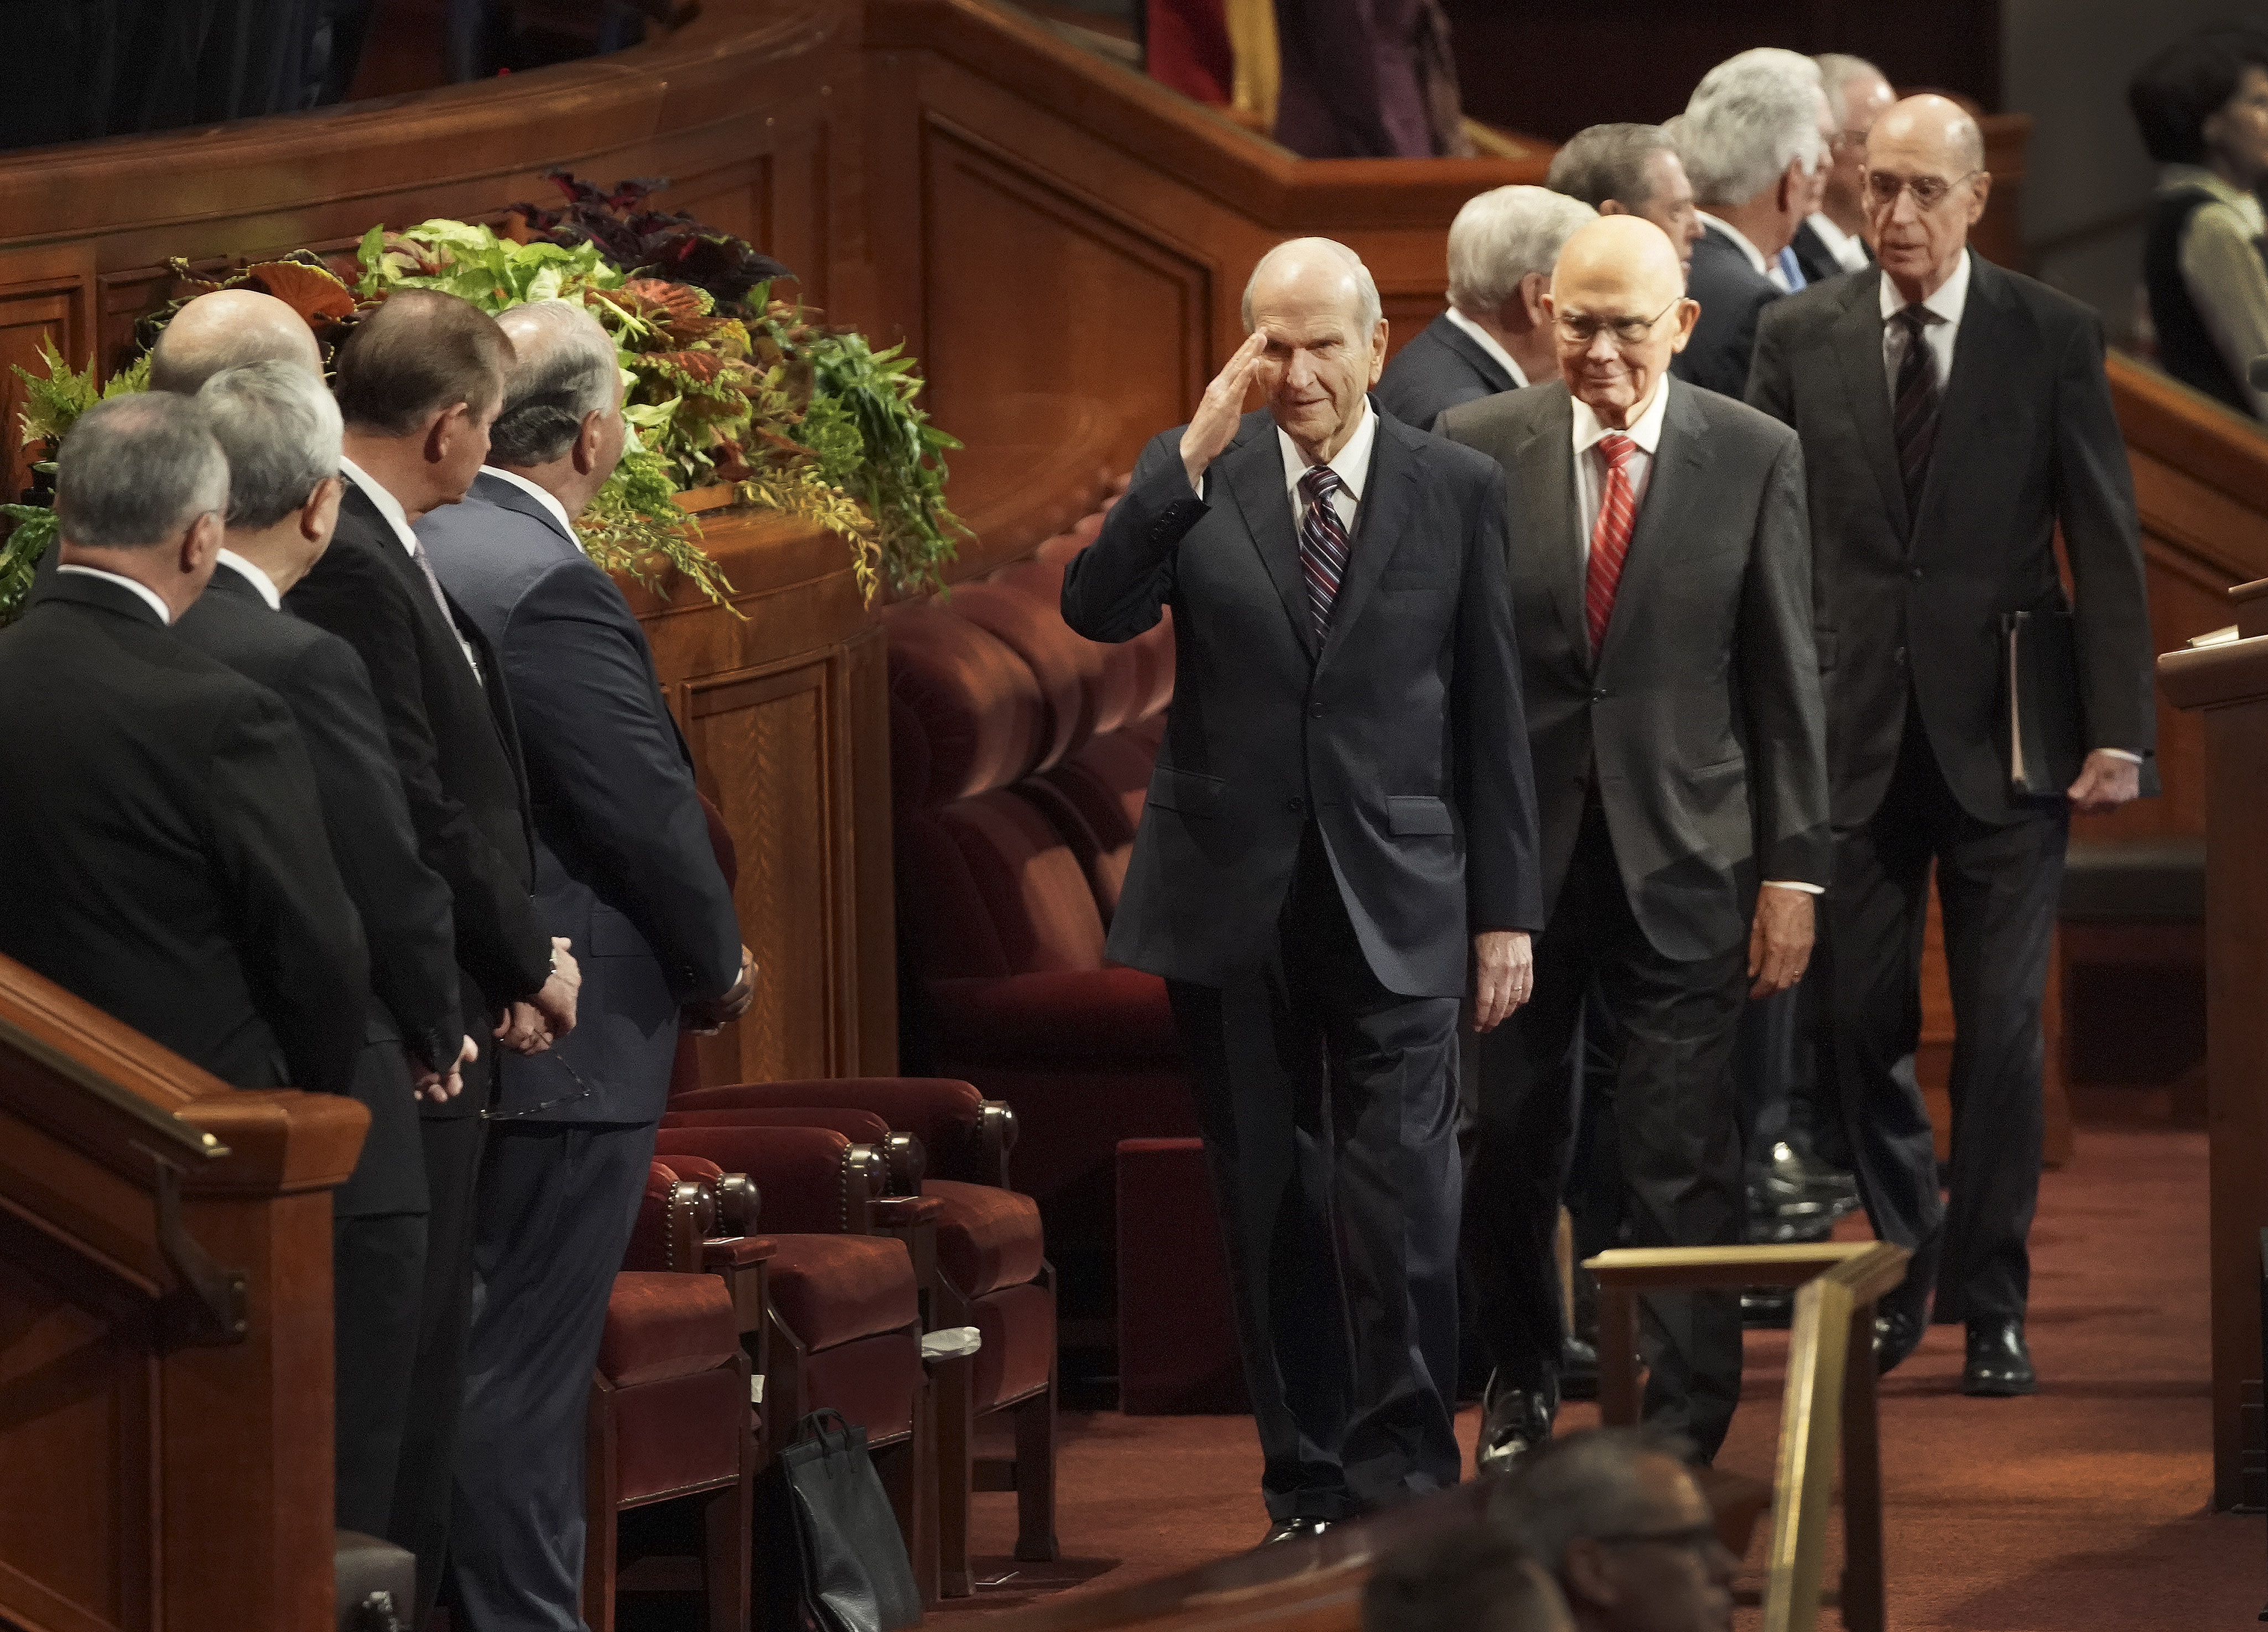 President Russell M. Nelson of The Church of Jesus Christ of Latter-day Saints salutes general authorities upon entering the Conference Center prior to the Saturday morning session of the faith's 189th Semiannual General Conference in Salt Lake City on Saturday, Oct. 5, 2019.